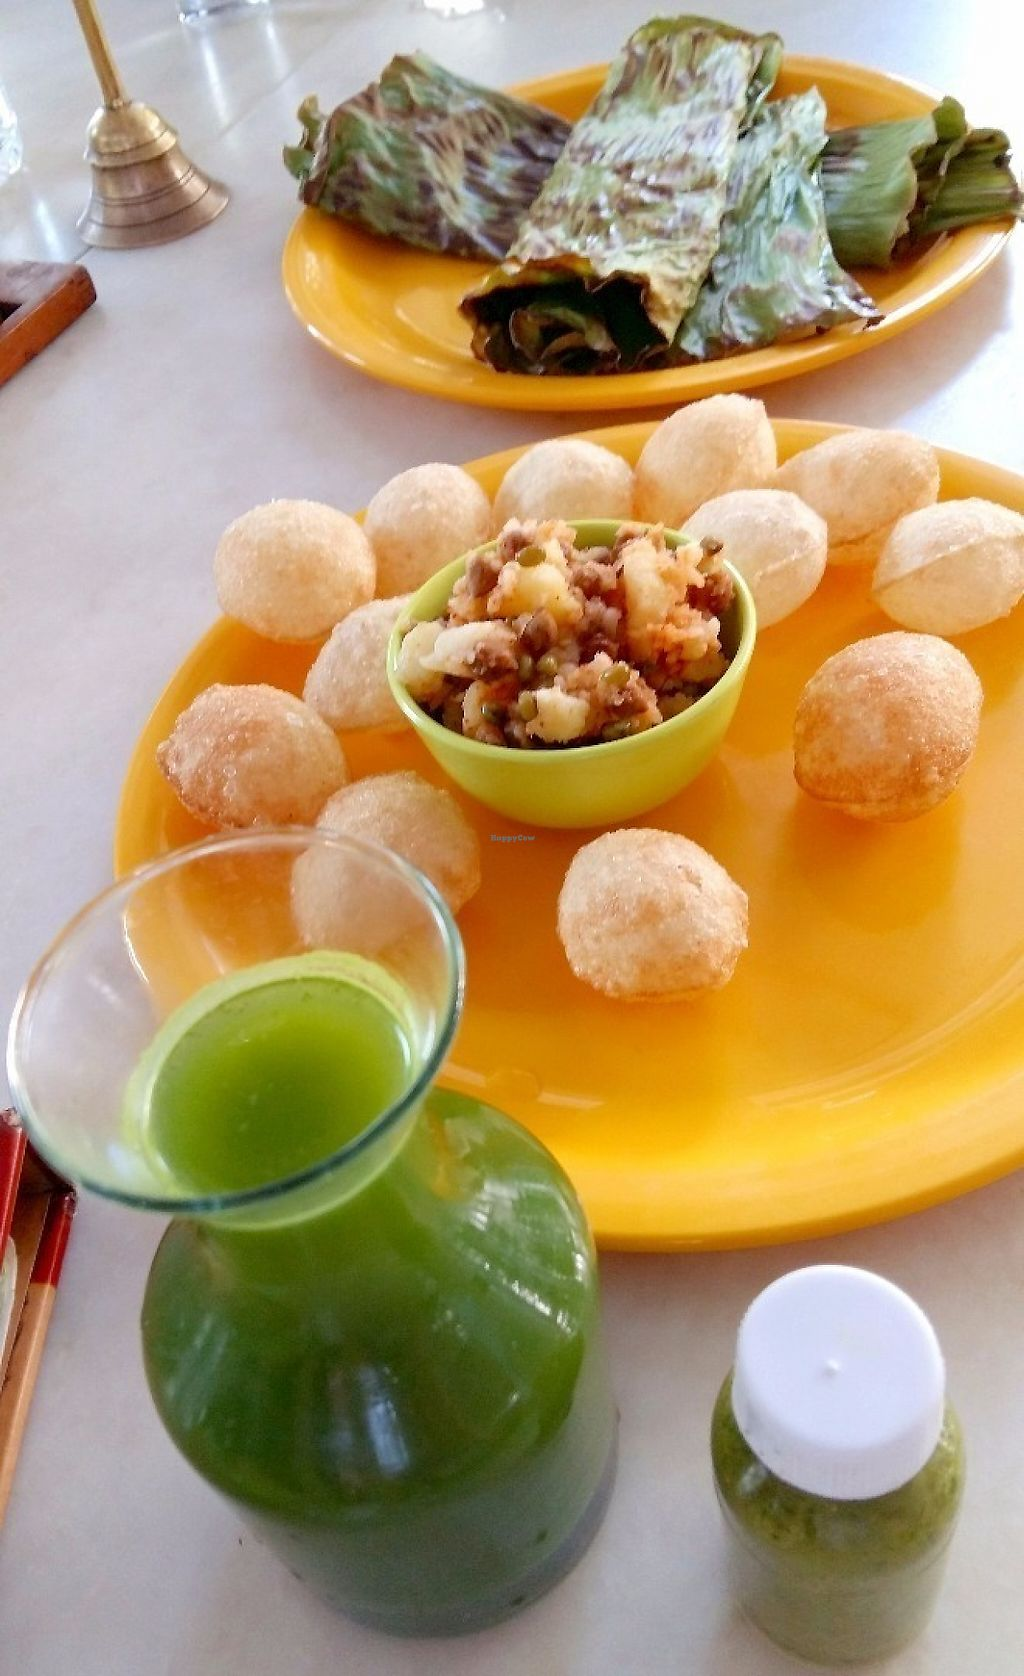 """Photo of The Green House  by <a href=""""/members/profile/Gudrun"""">Gudrun</a> <br/>Gol Gappa (Pani Puri) <br/> May 23, 2017  - <a href='/contact/abuse/image/26384/261761'>Report</a>"""